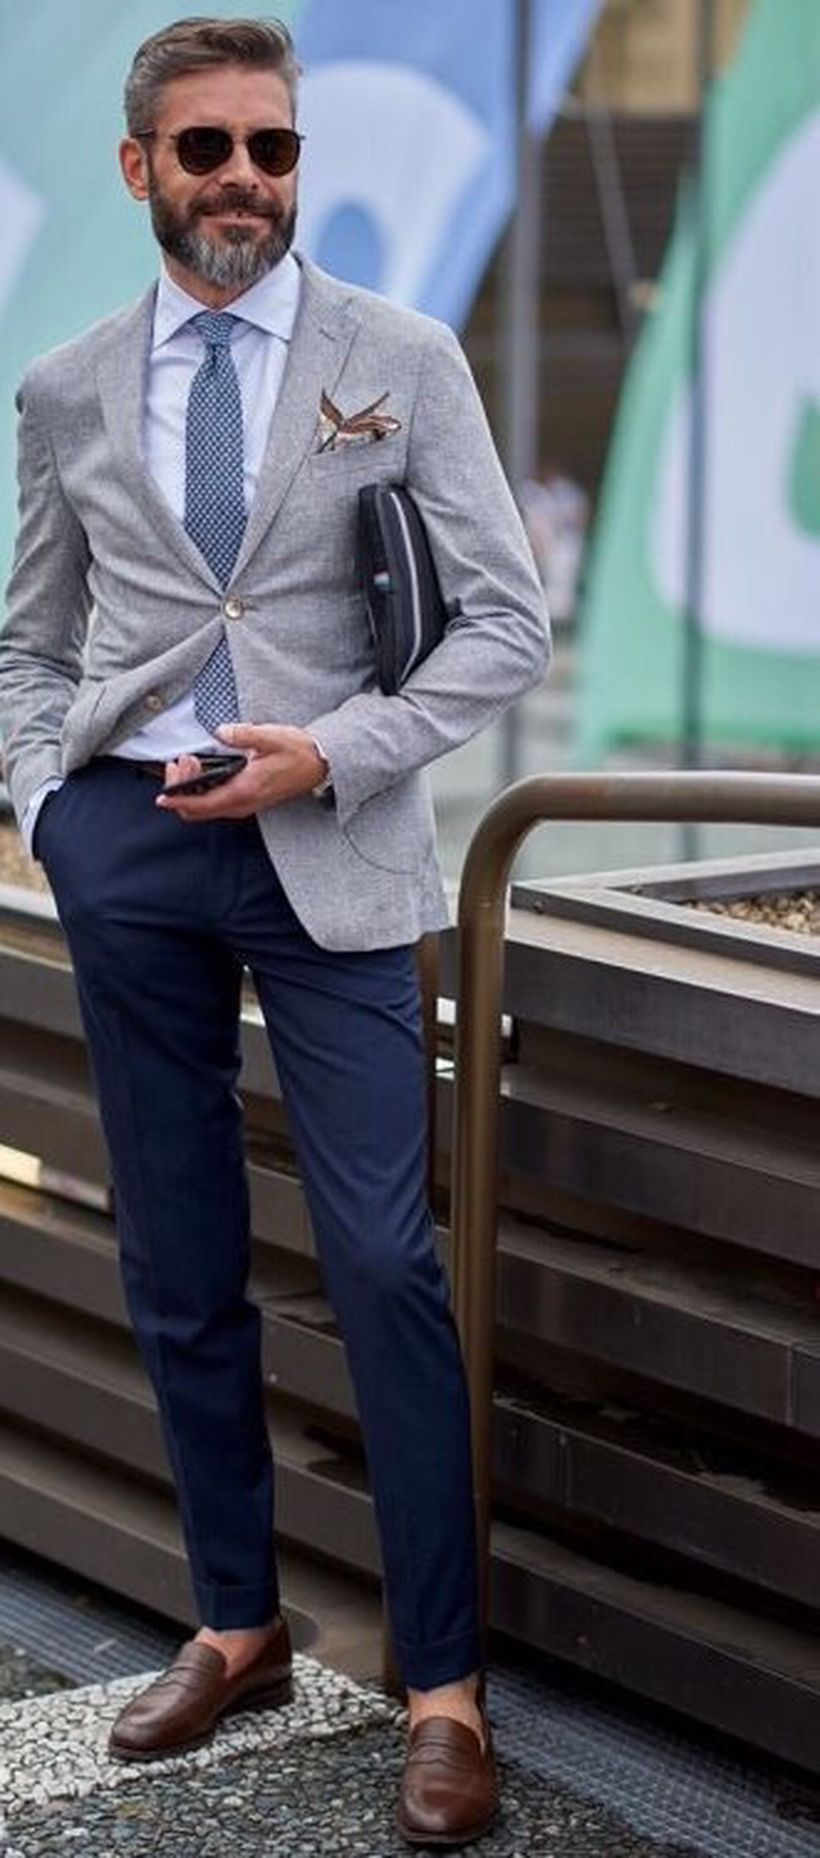 Business Casual Attire For Men – 70 Relaxed Office Style Ideas